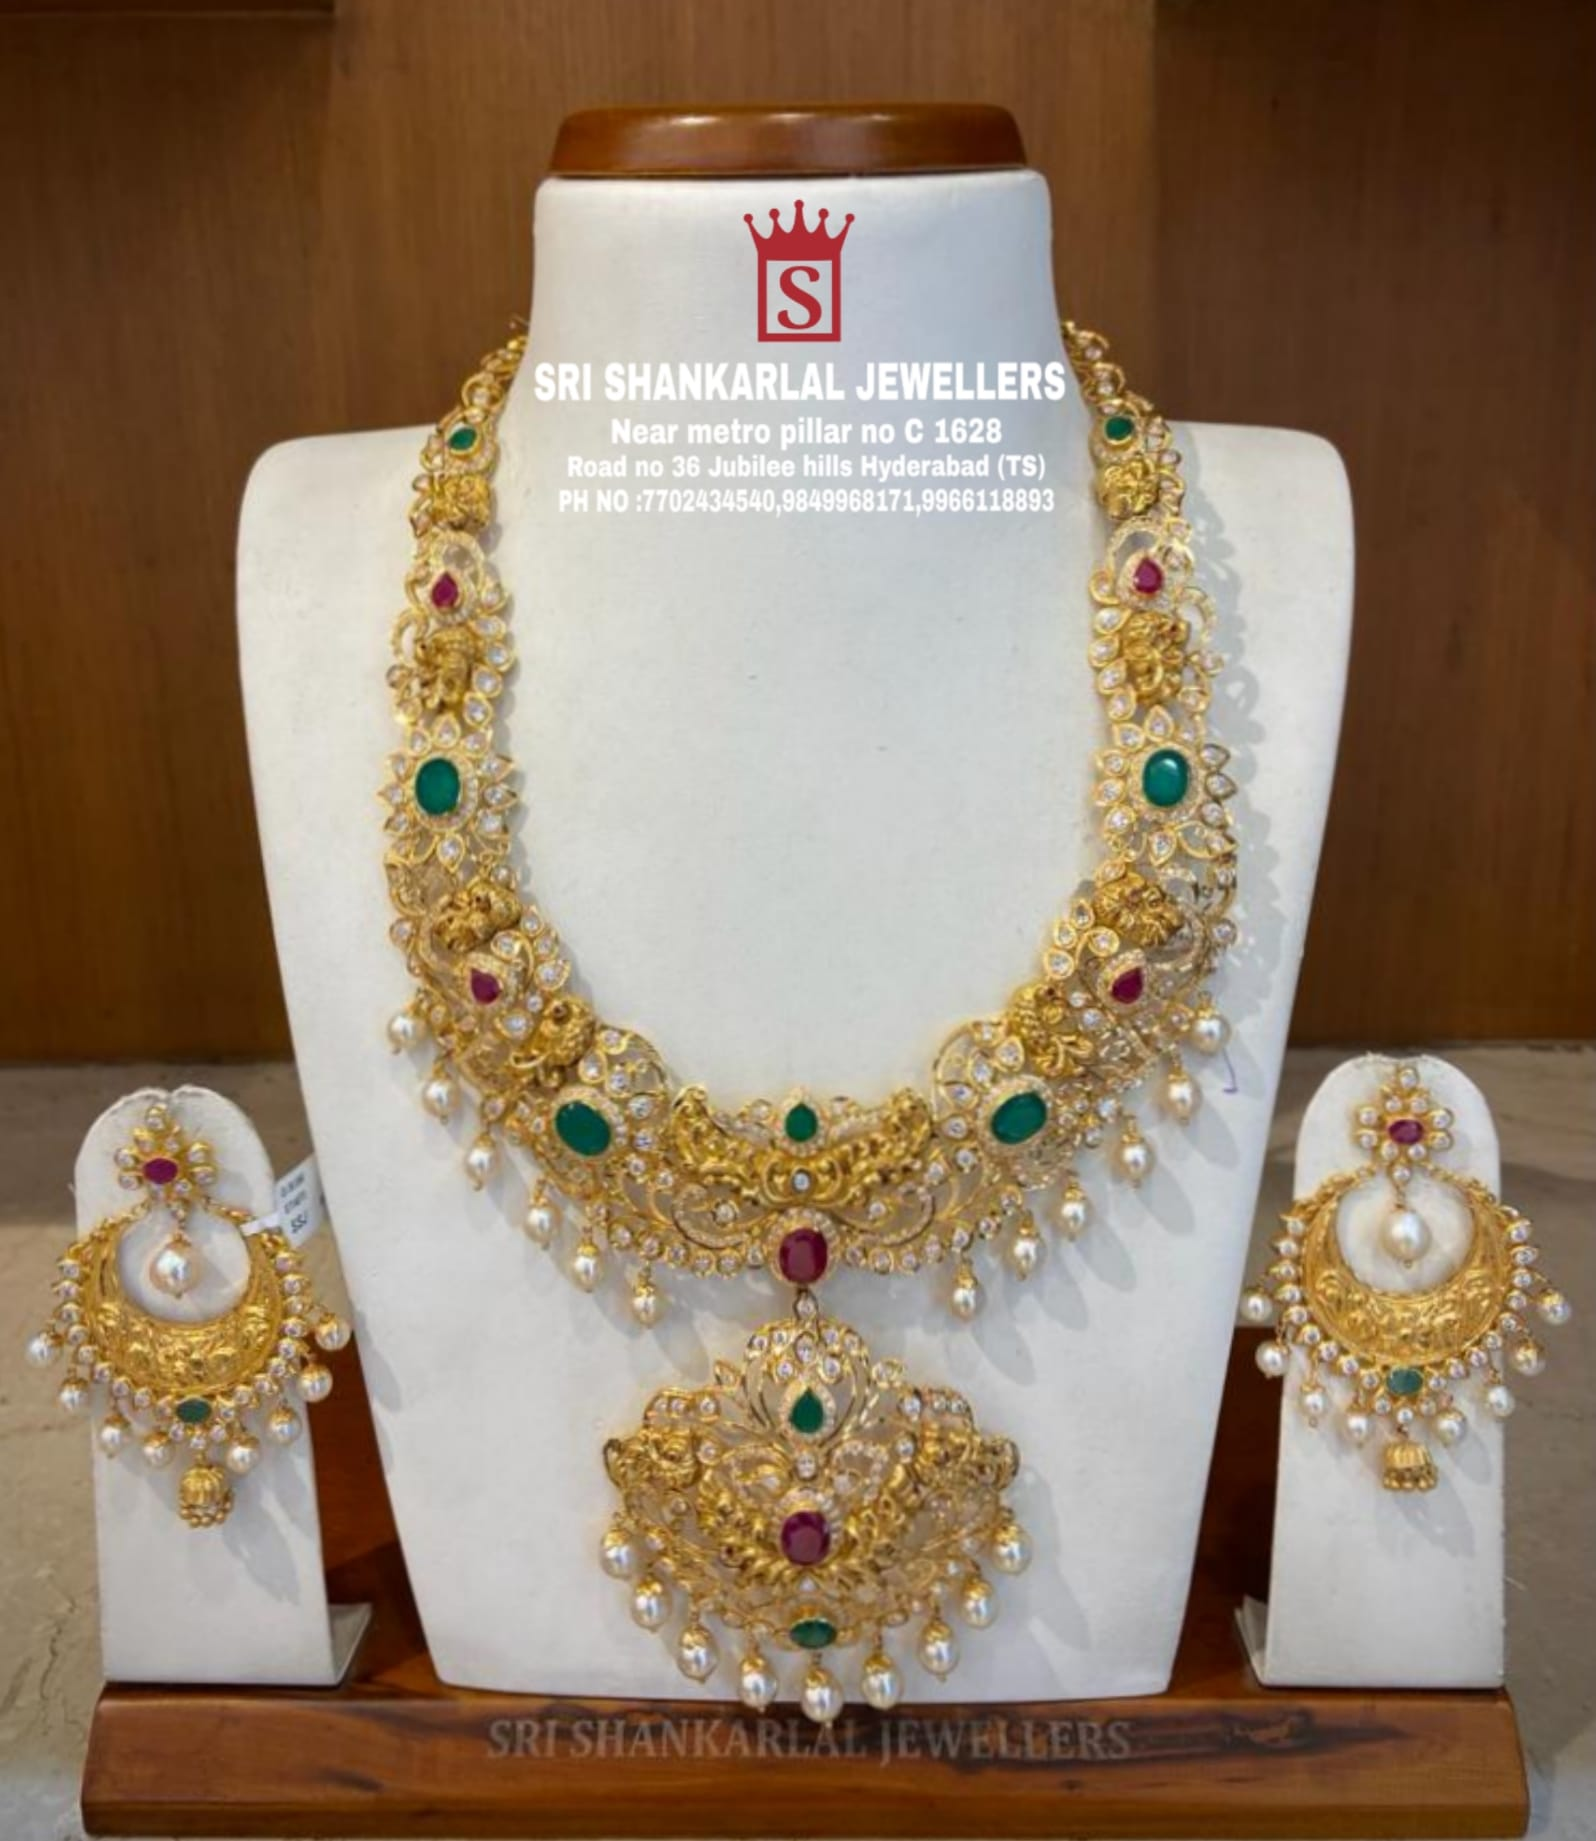 Latest Pachi Peacock Haram and Chandbalis in light Weighted at reasonable prices! Please visit on video call 7702434540 //9849968171 //9966118893//7702034540. 2021-10-19